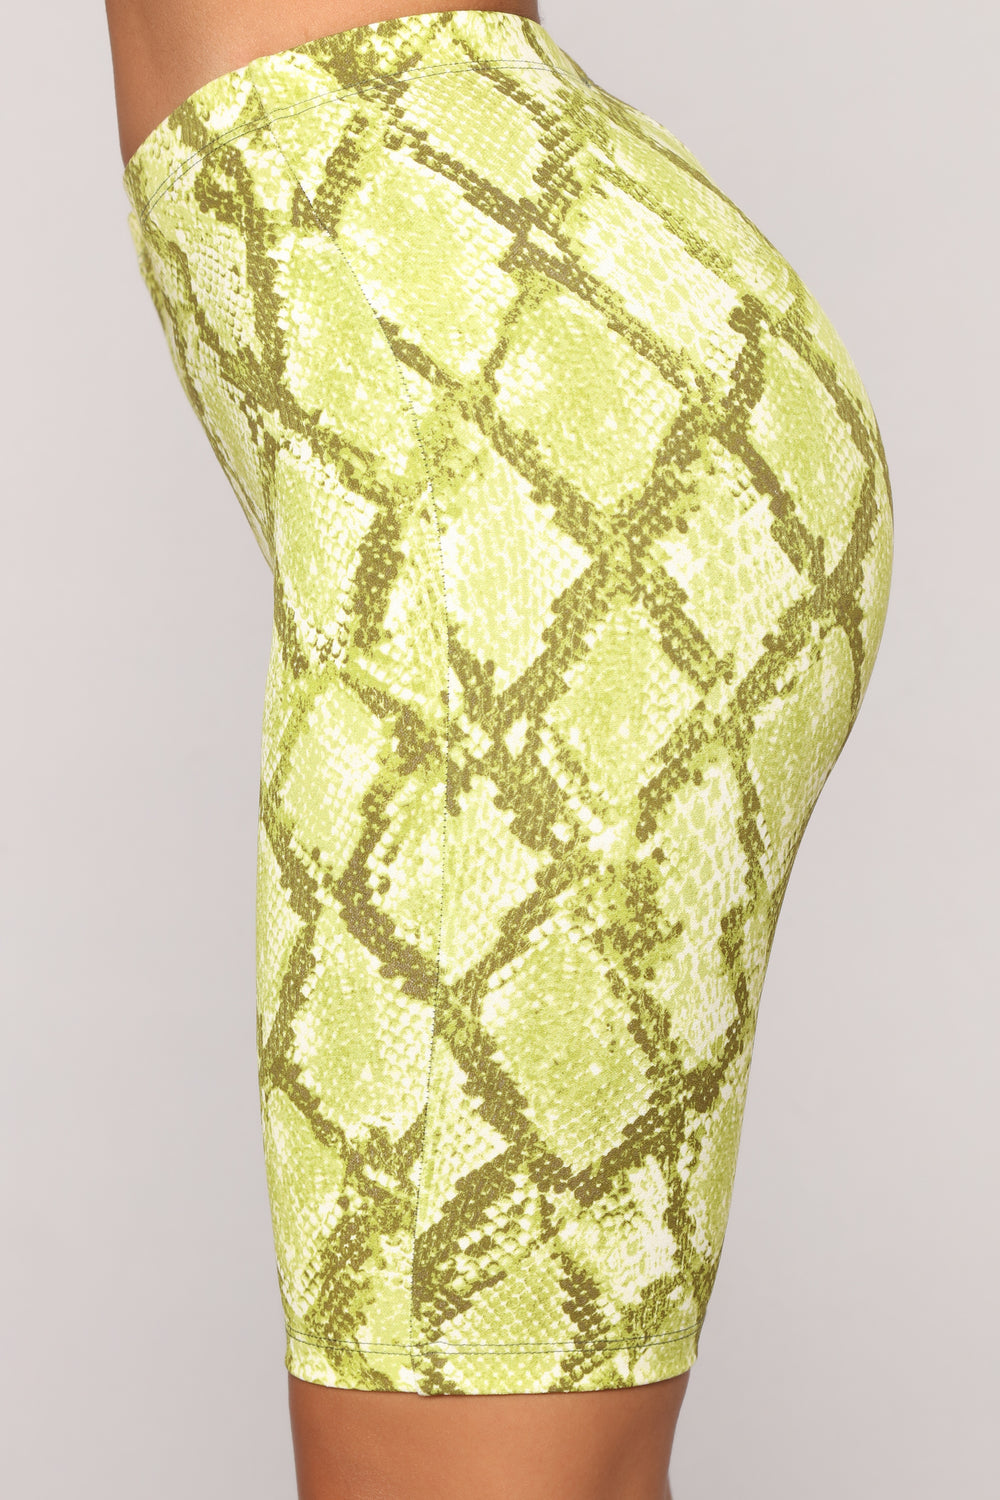 Snake Charmer Biker Short Set - Lime